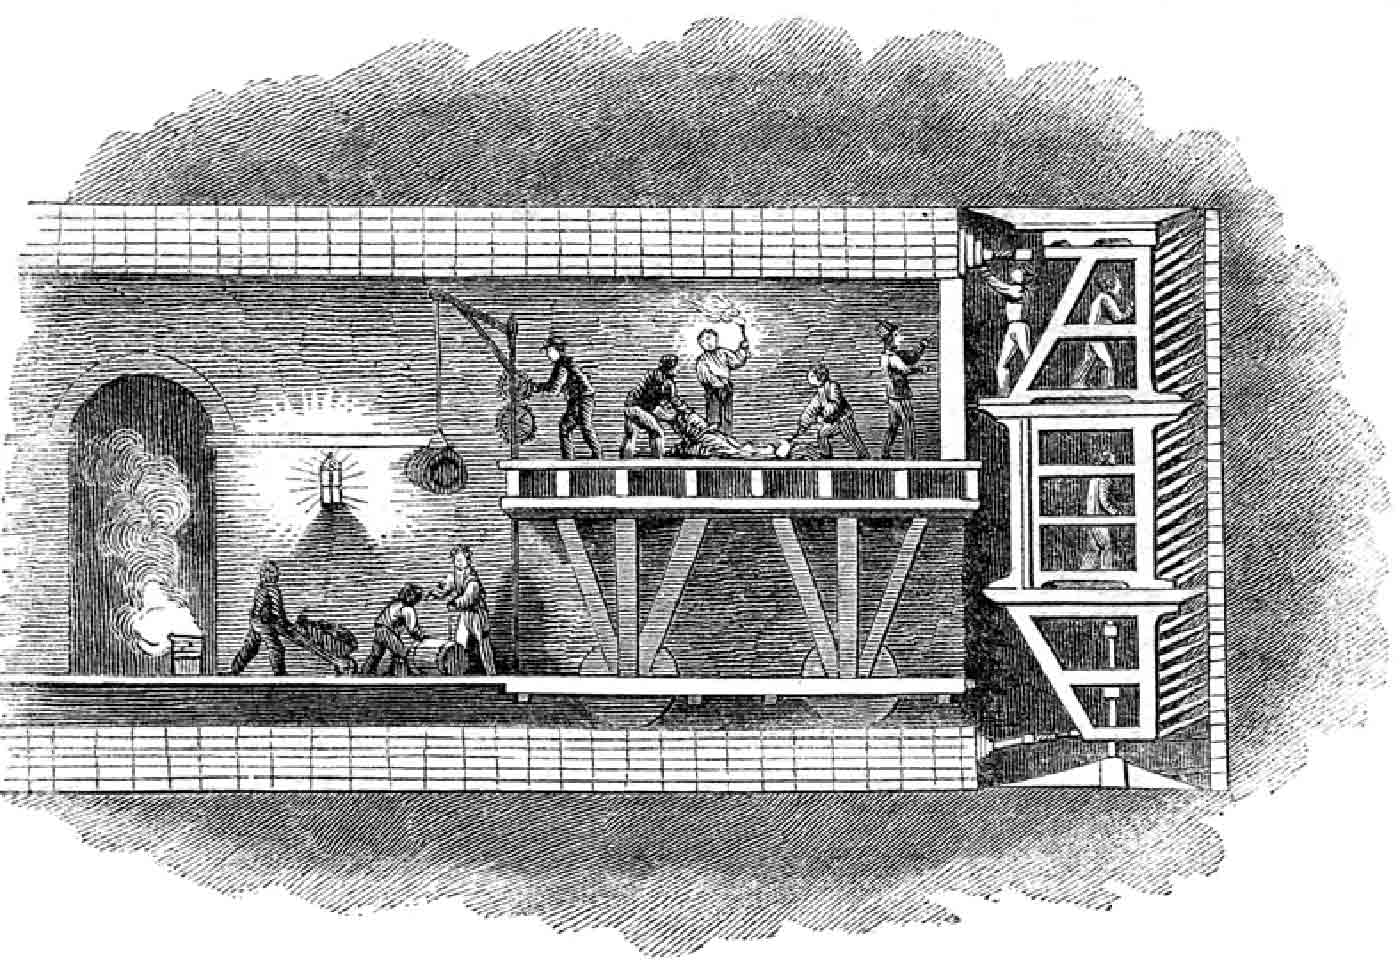 Diagram of the tunnelling shield used to construct the Thames Tunnel, London.